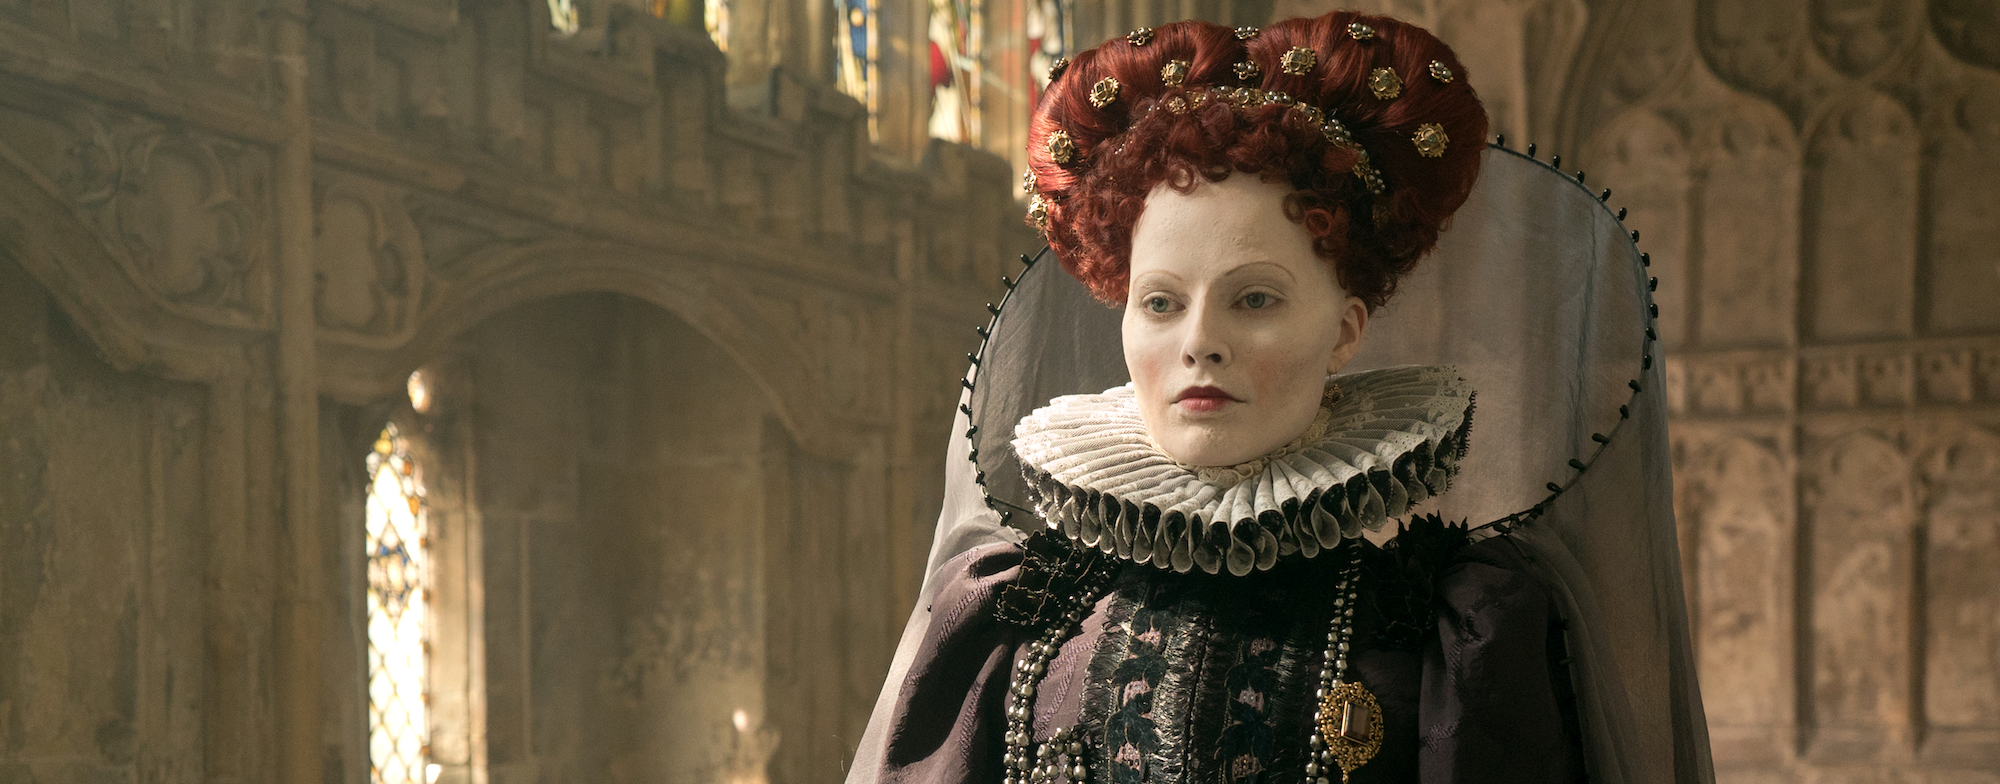 Oscars 2019: Mary, Queen of Scots